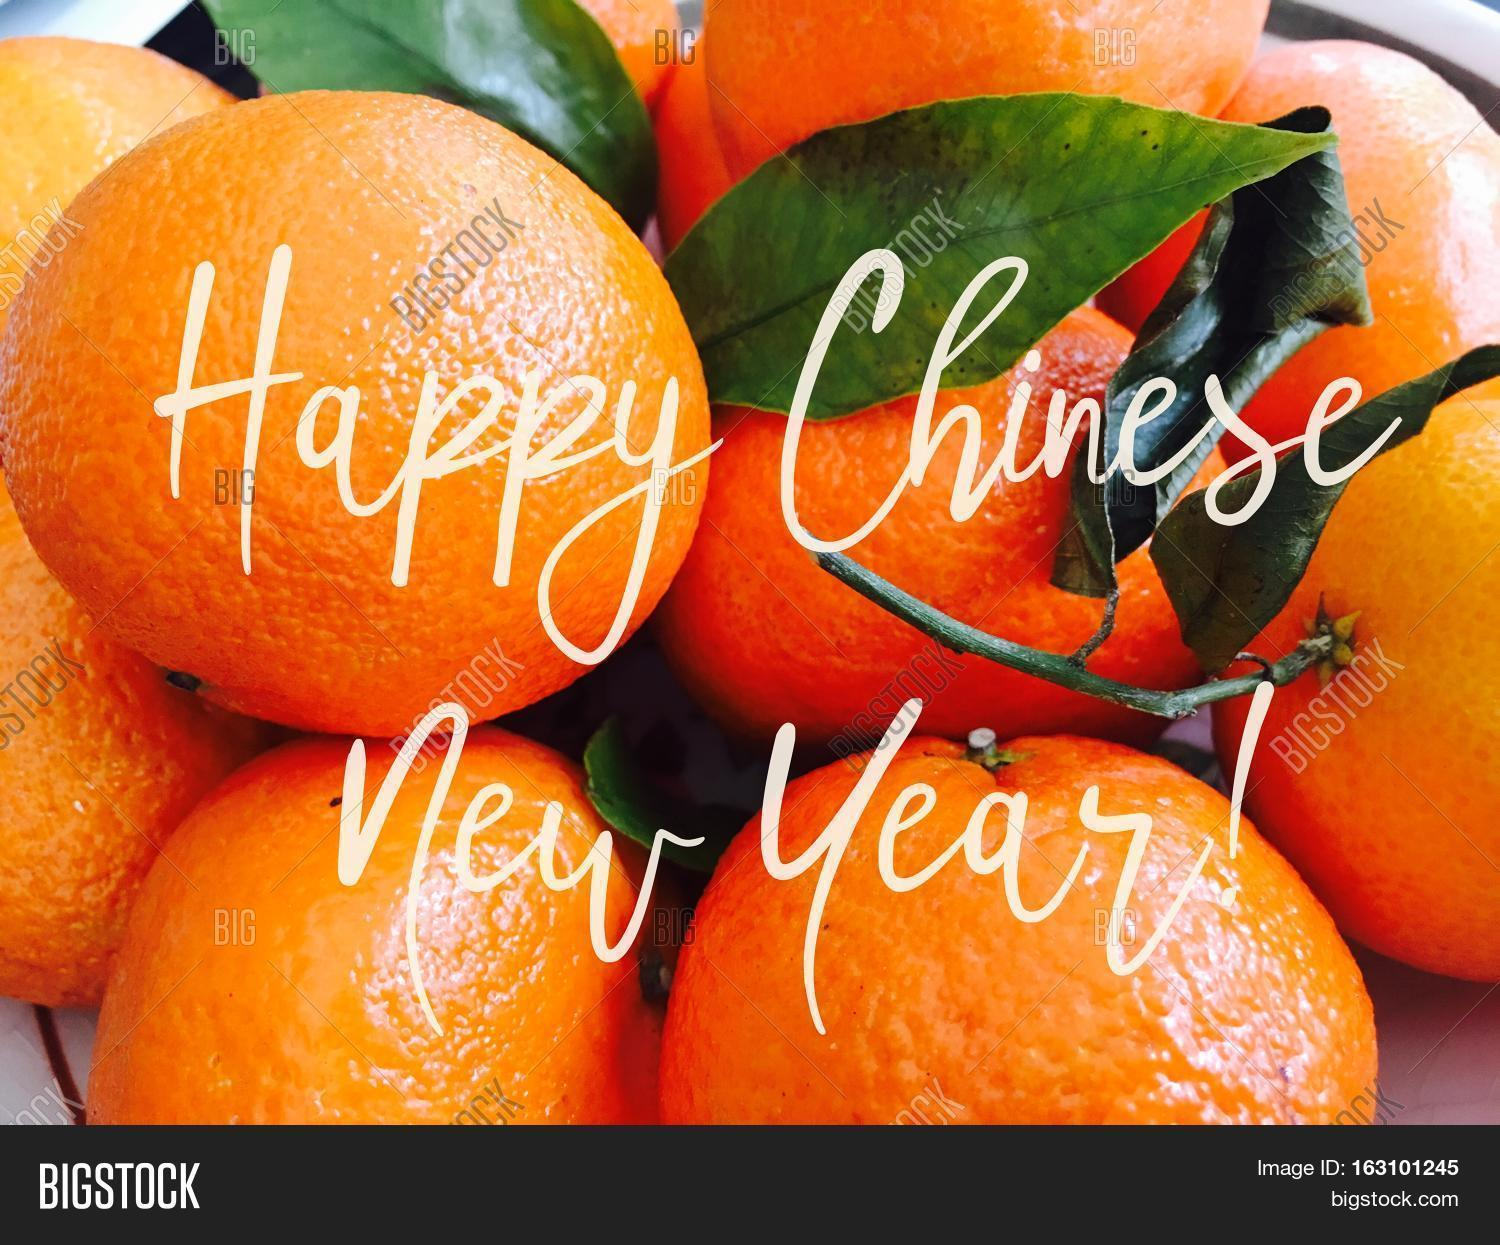 Happy chinese new year good fortune image photo bigstock happy chinese new year good fortune fruit for fullness and wealth social media cyber card image kristyandbryce Gallery